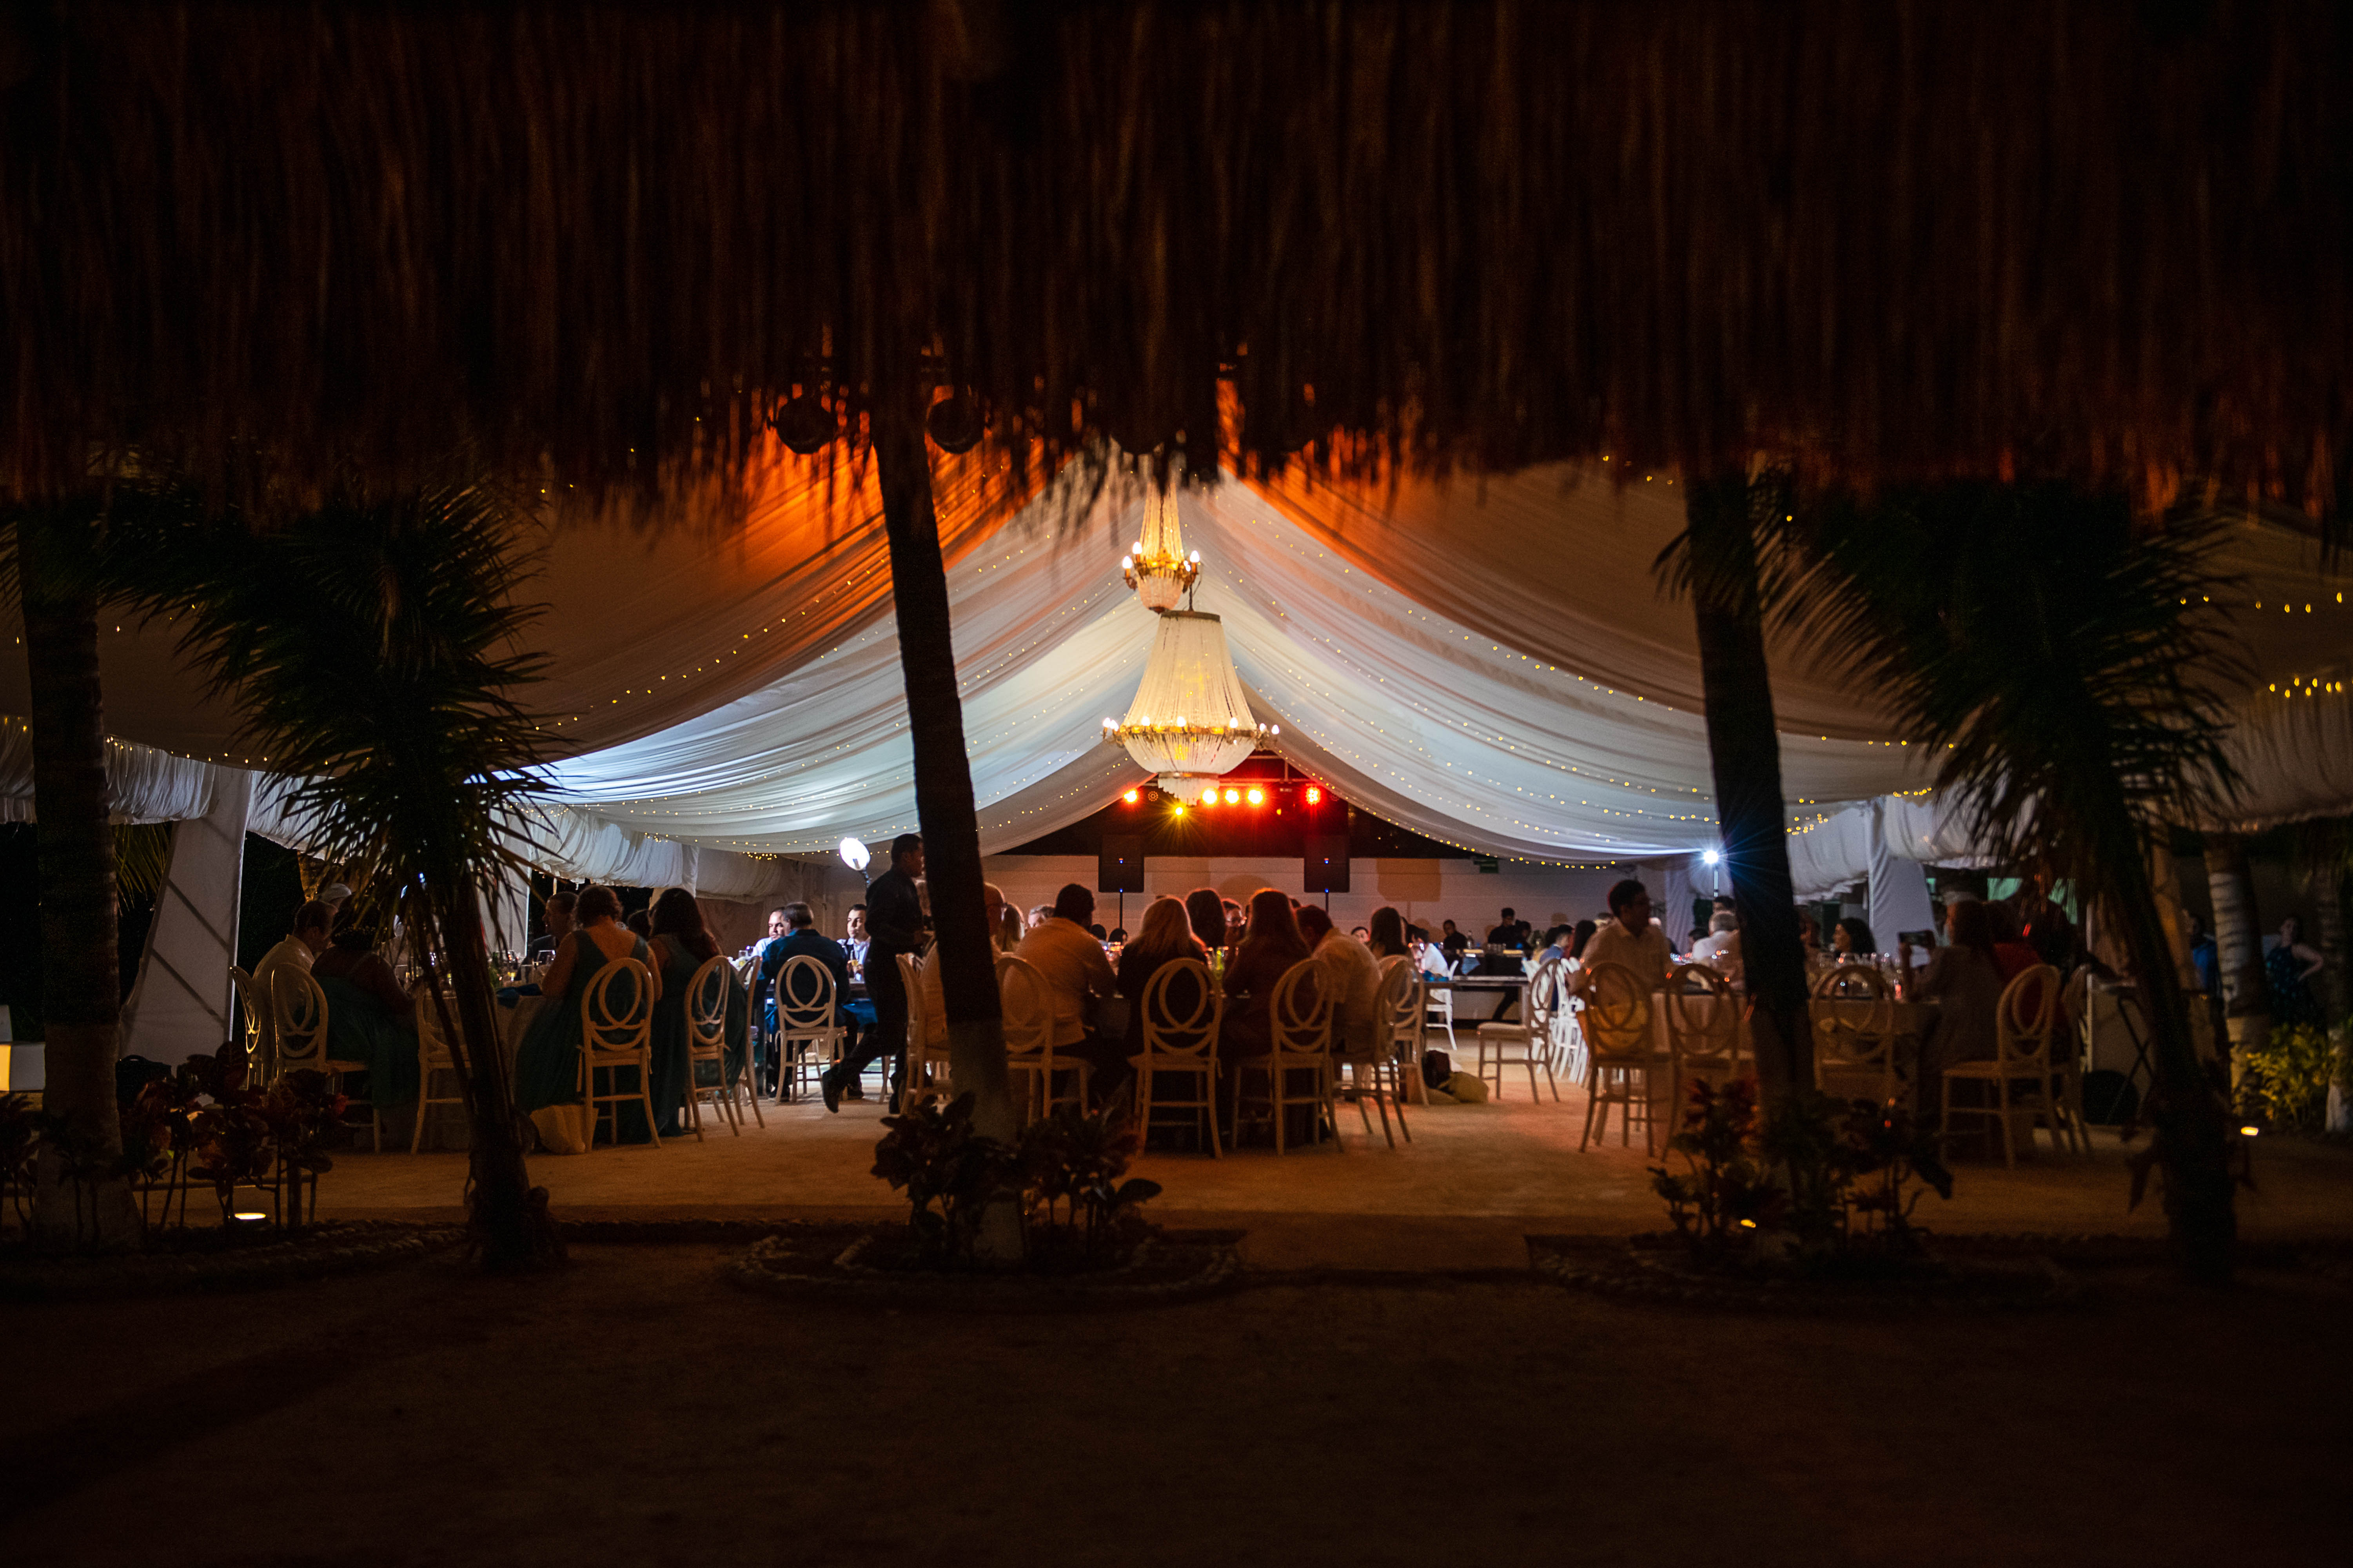 the set up and candles at the palapa during the dinner in te wedding in Ocean Events Cancun